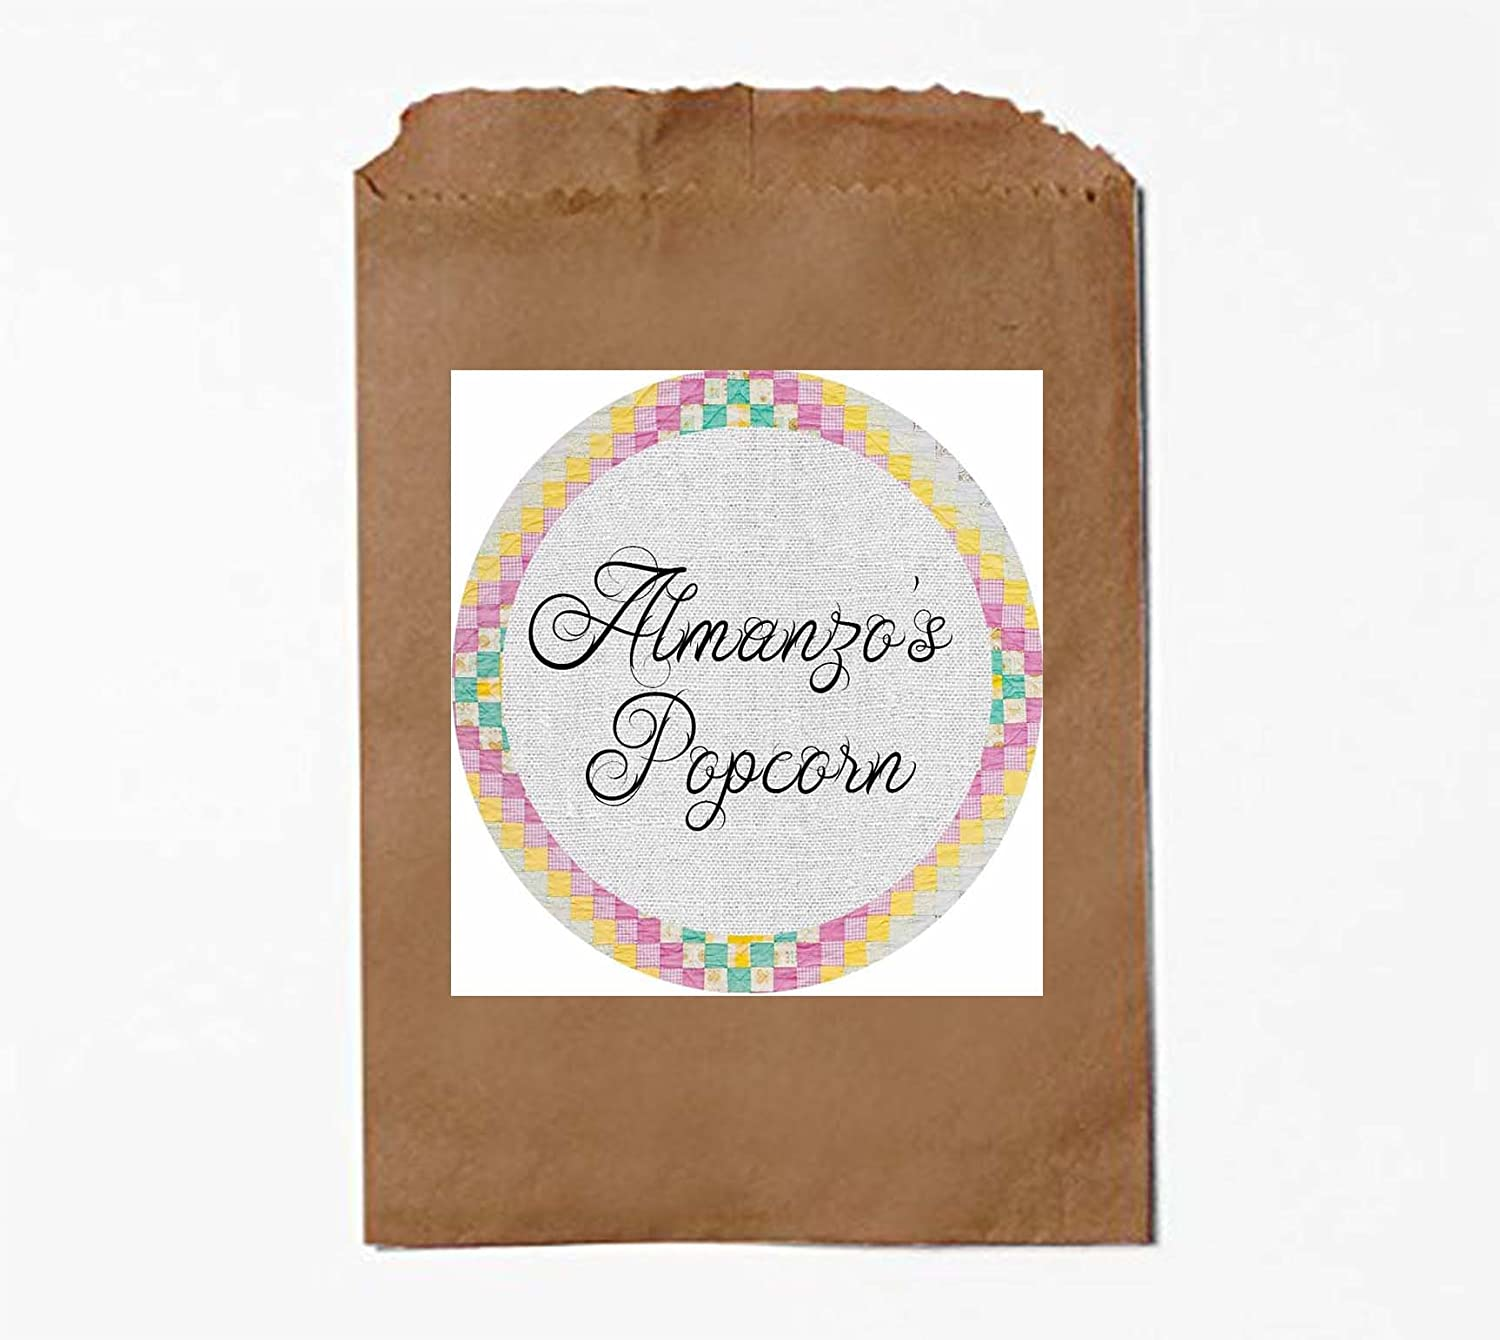 House on the Prairie Western Party Supply Invite and Decor (Popcorn bags)